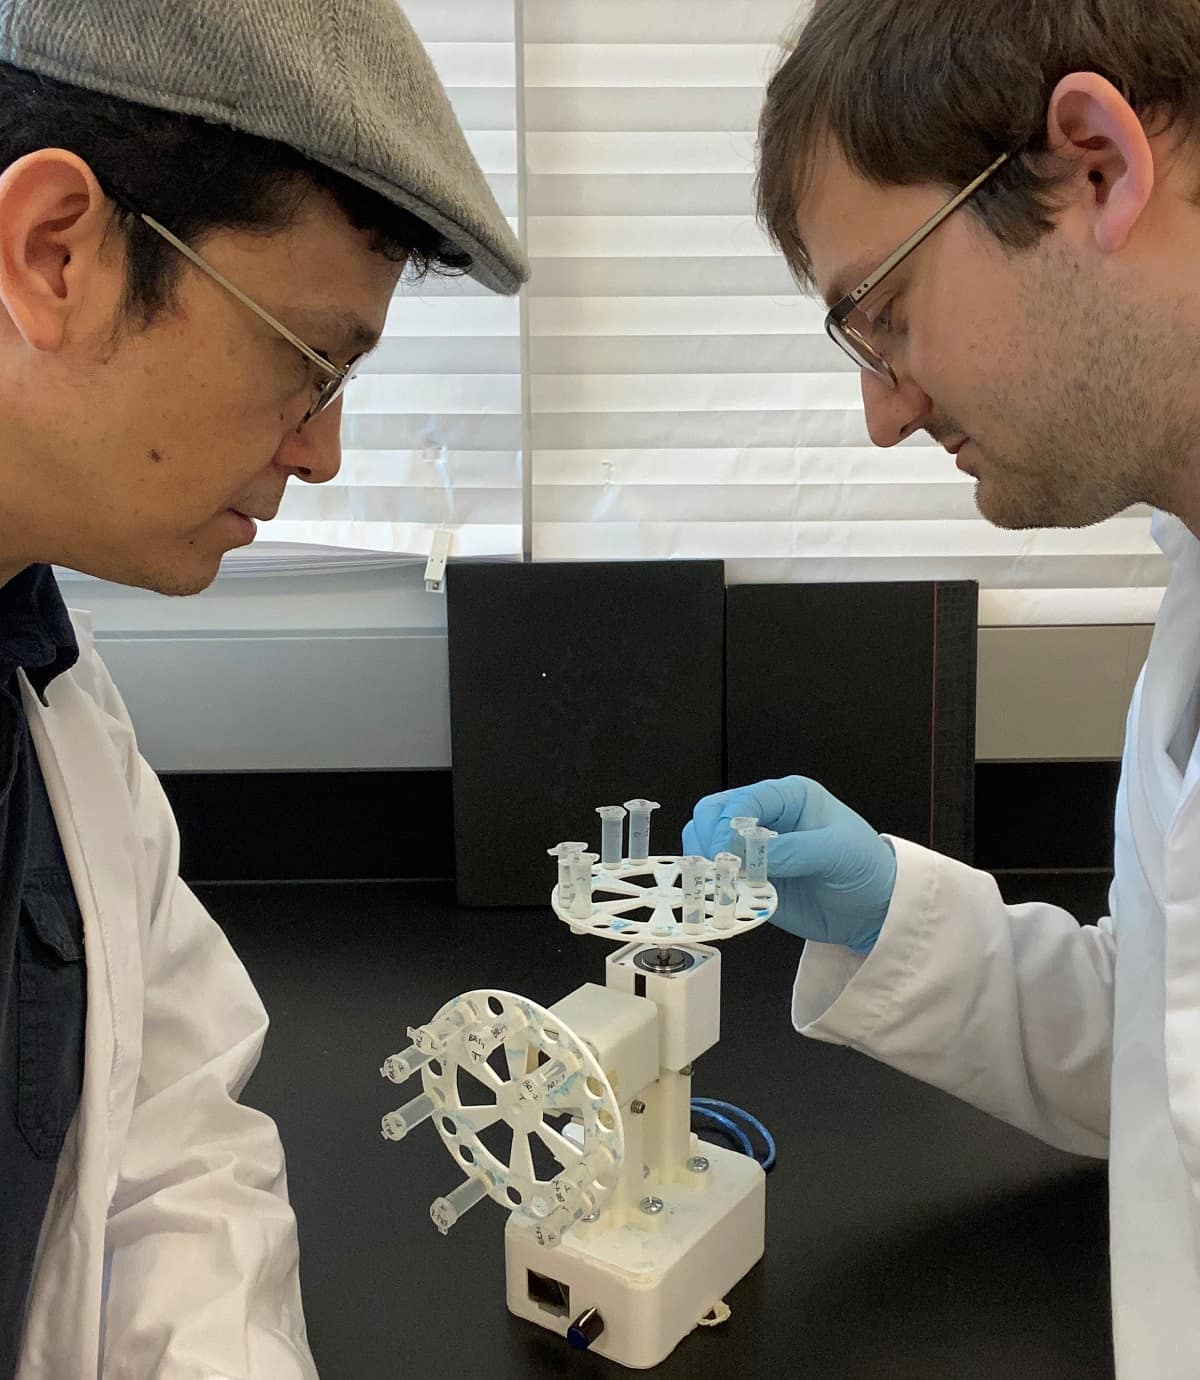 Dr. Hugo Castillo and Mechanical Engineering graduate student Collin Topolski research space food cultivation by emulating microgravity on Earth, with the help of 3D-printed tool called a clinostat. (Photo: Hugo Castillo)